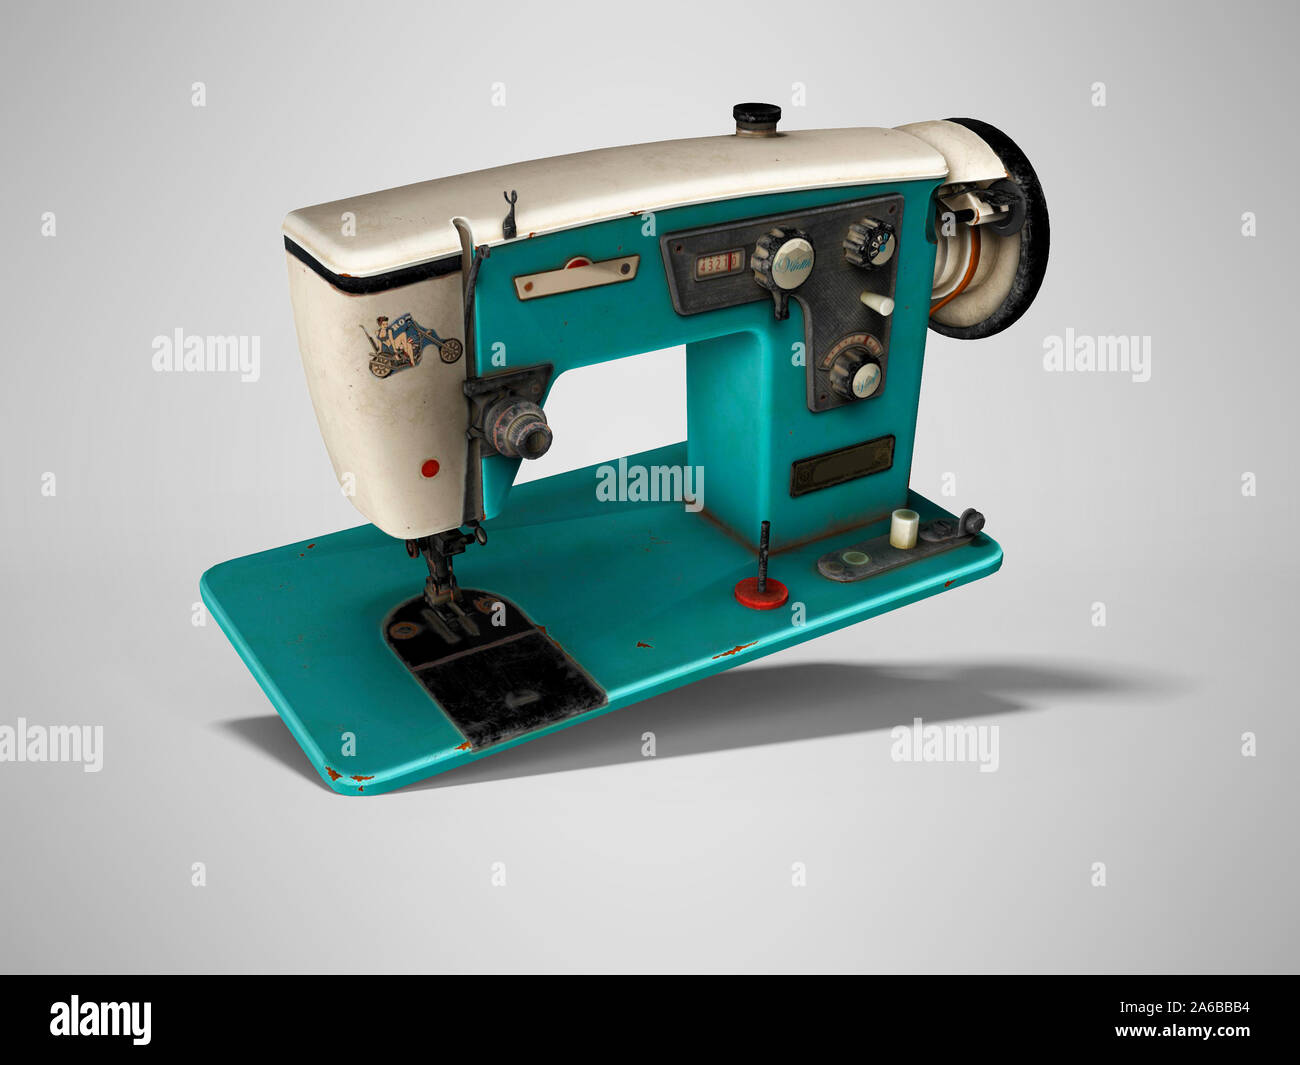 Blue old electric sewing machine falls on the floor 3d render on gray background with shadow Stock Photo